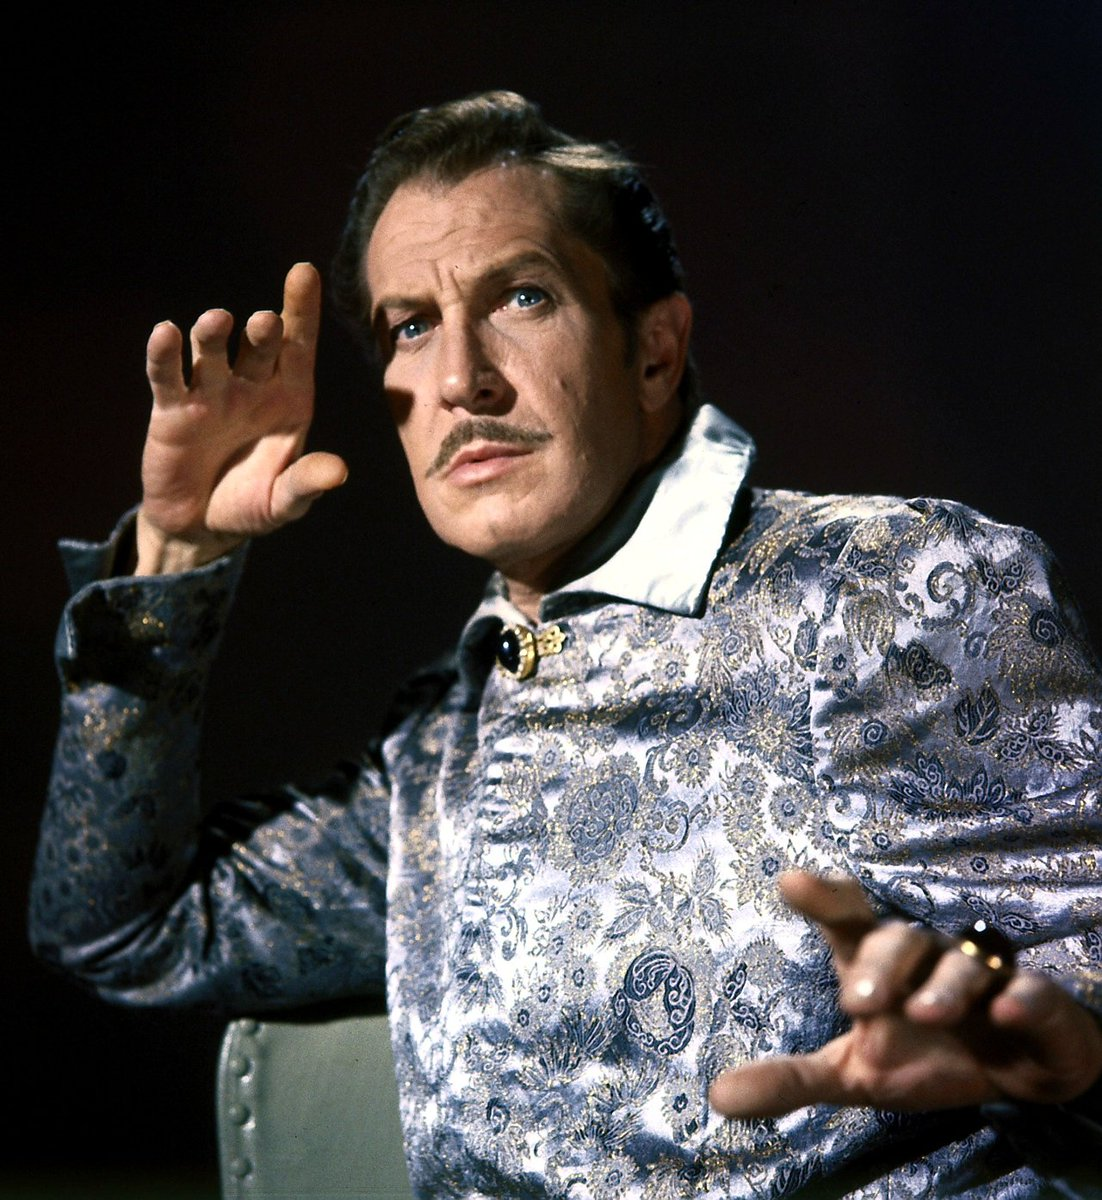 Vincent Price always casts his spell with grace under pressure. The Raven - inspiration for #DoctorStrange 🤟👁🤘